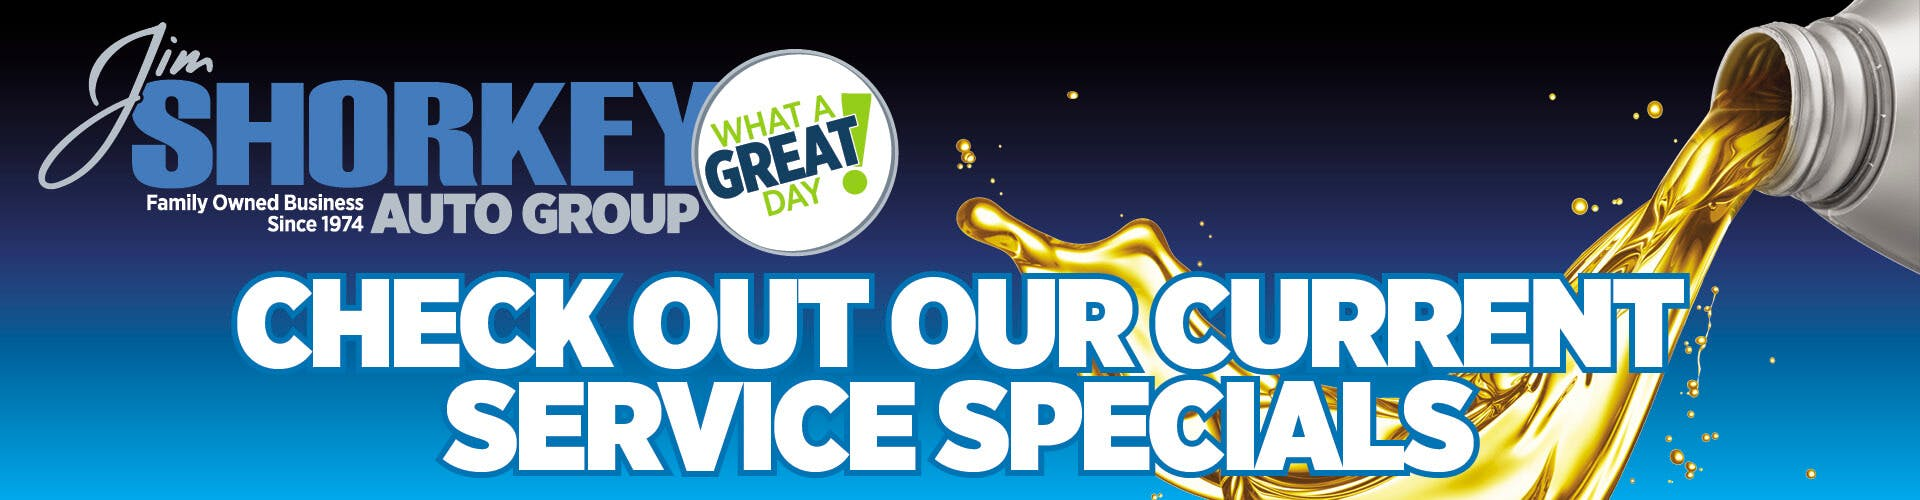 Check Out Our Current Service Specials!